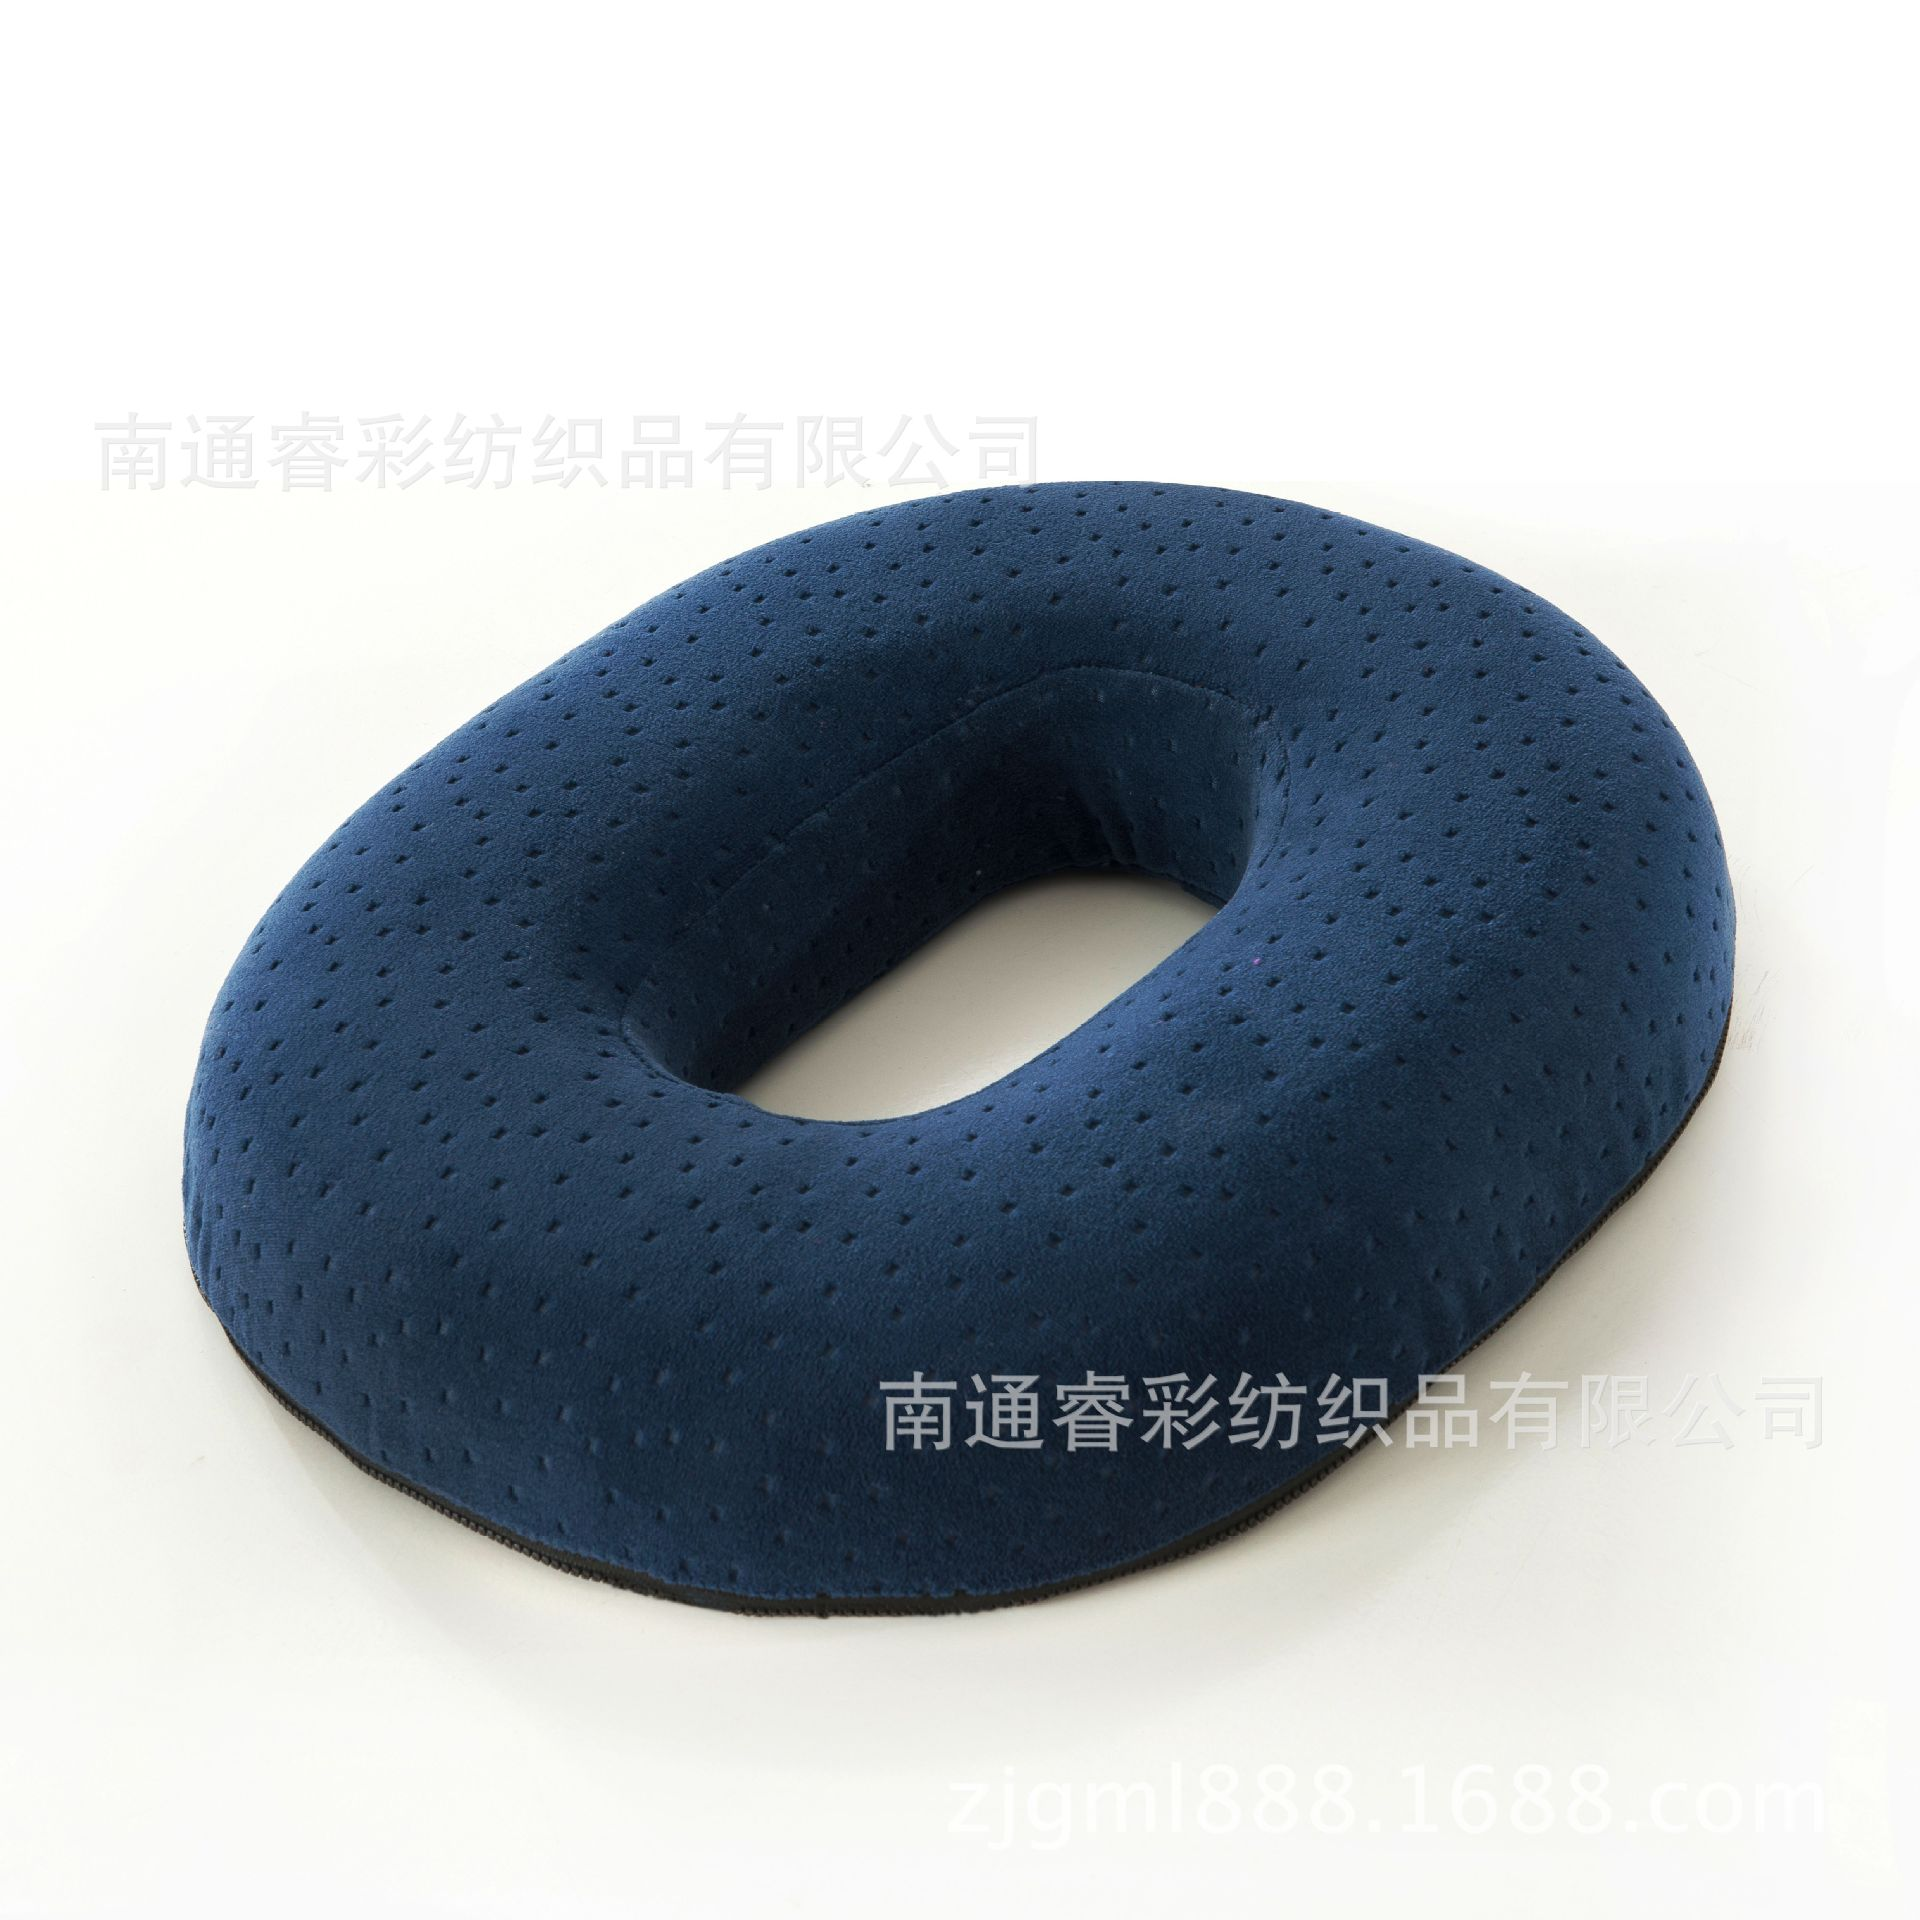 cushion Hemorrhoids cushion High resilience cushion hollow postoperative pad prostate coccygeal vertebra before contact 5boxes 10pcs prostatitis pad to treat prostate disease sexual dysfunction of male pad urological pad painful urination